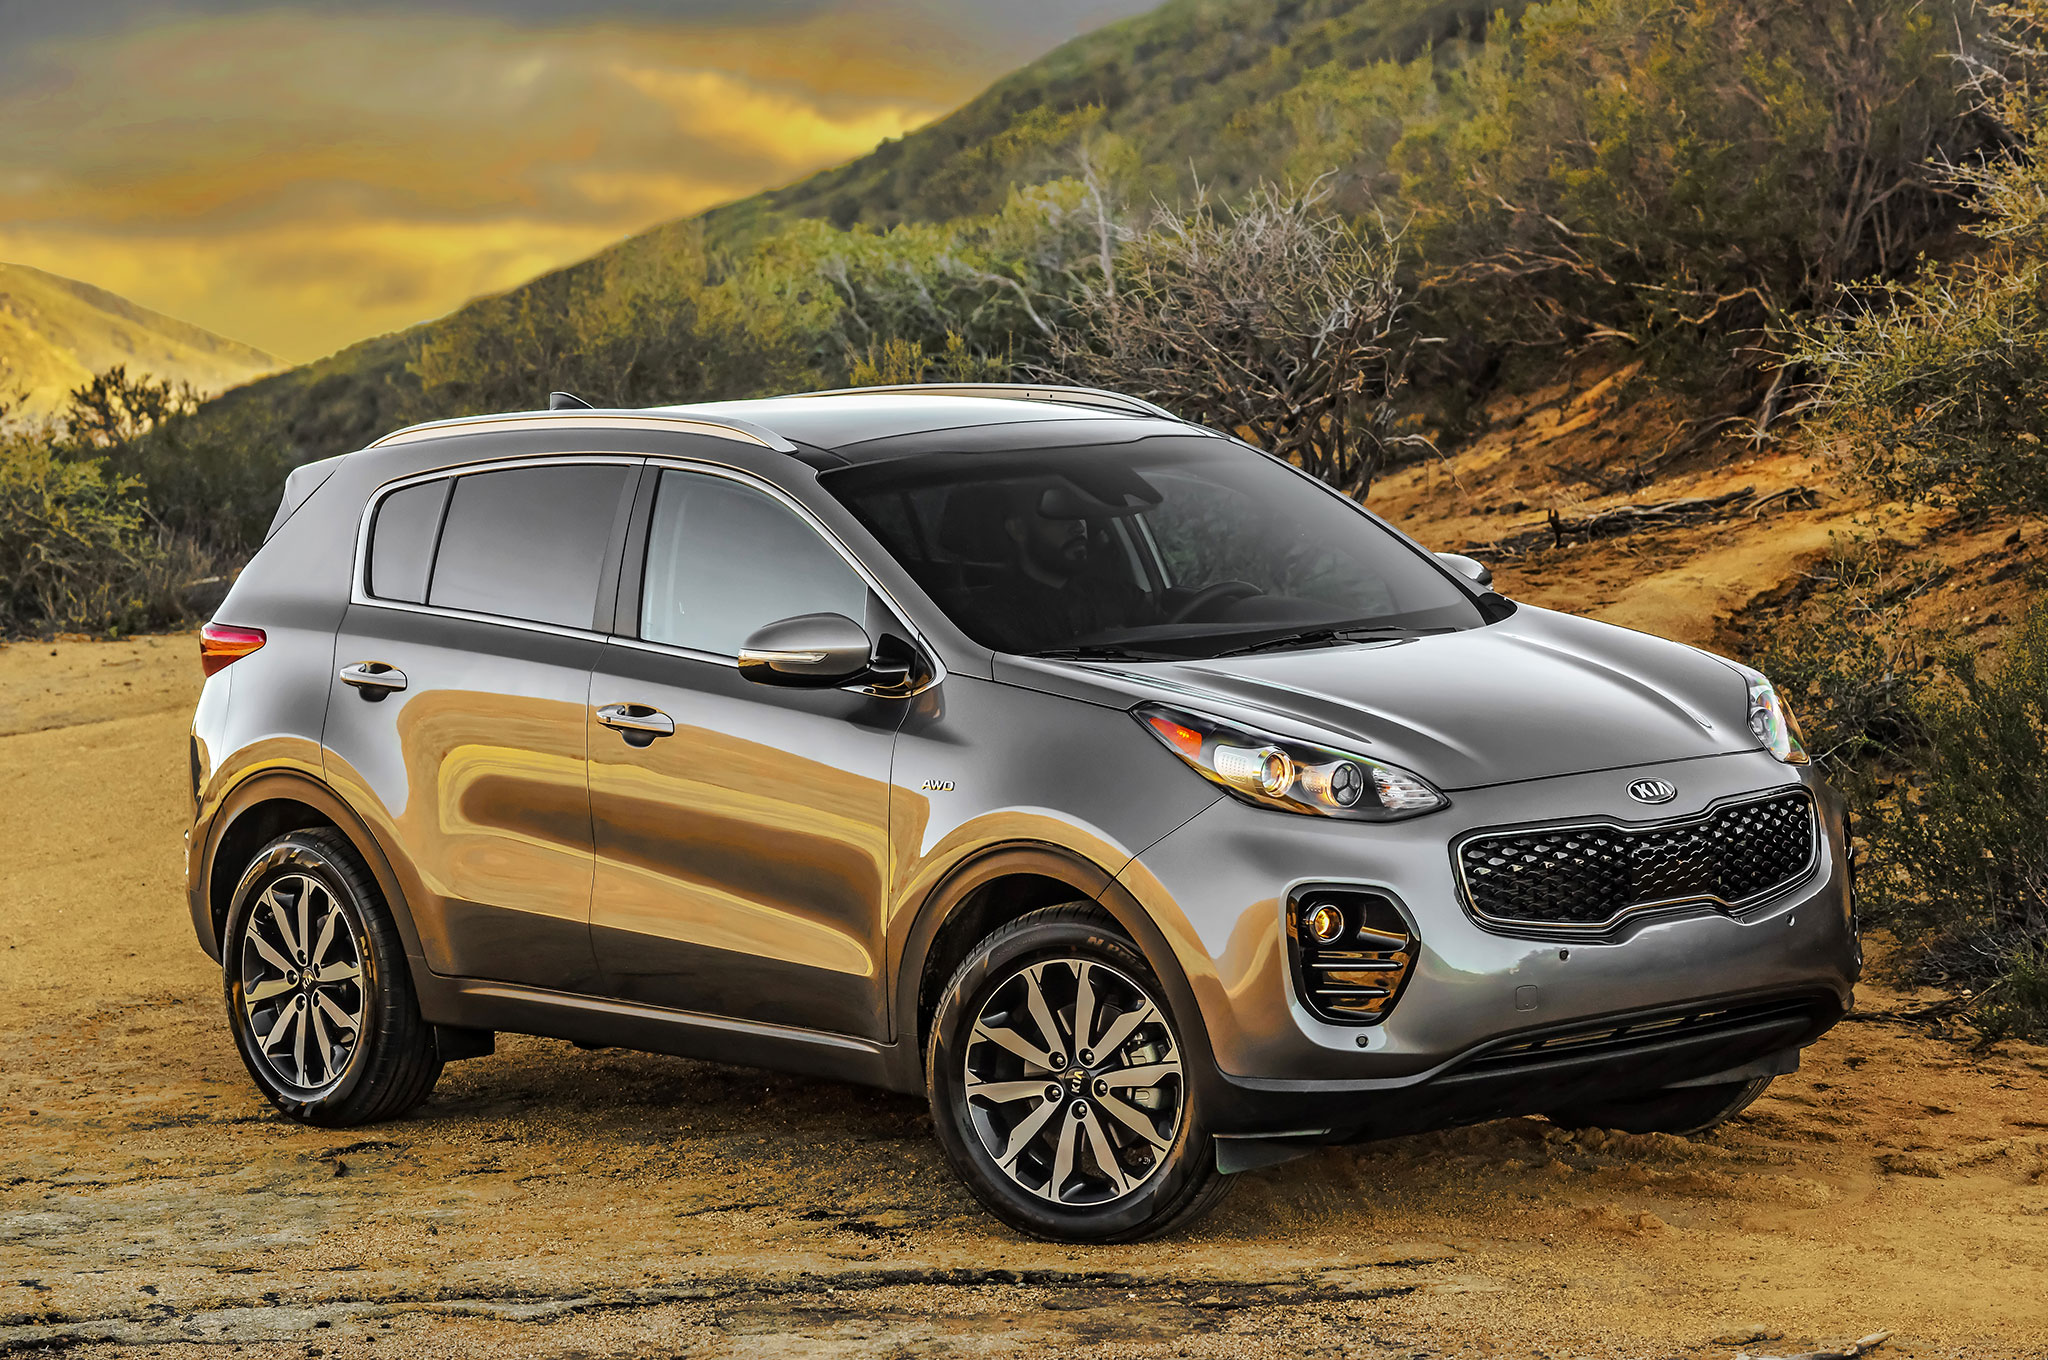 Best Midsize SUV for Towing a Travel Trailer | Top 6 Choices